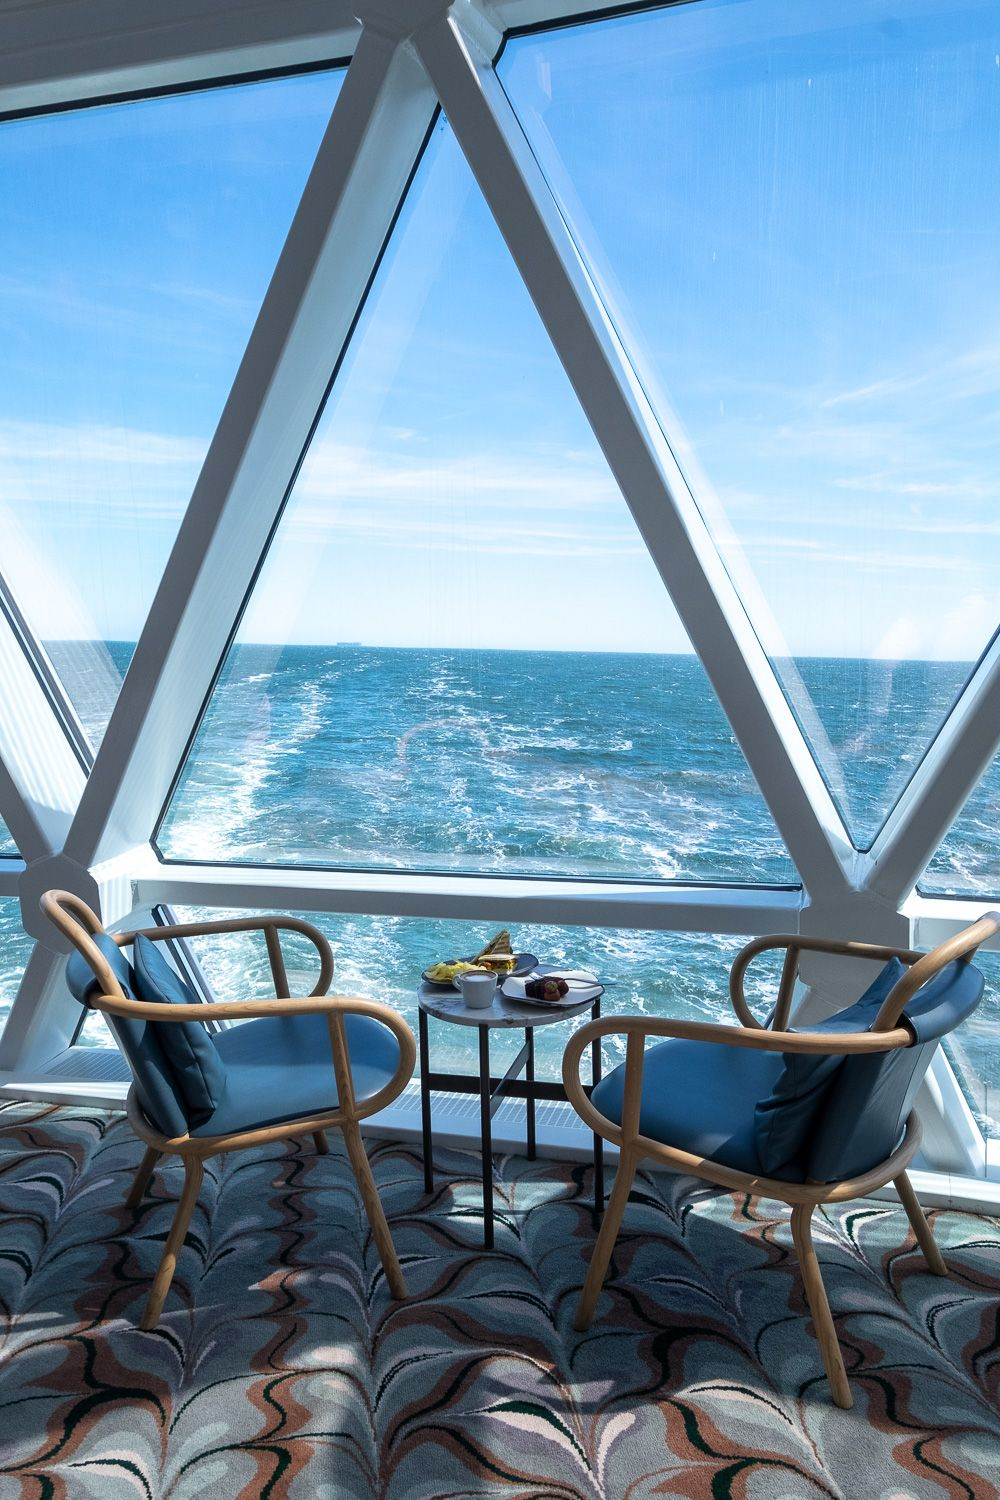 12 Reasons To Choose Celebrity Edge For Your Next Cruise